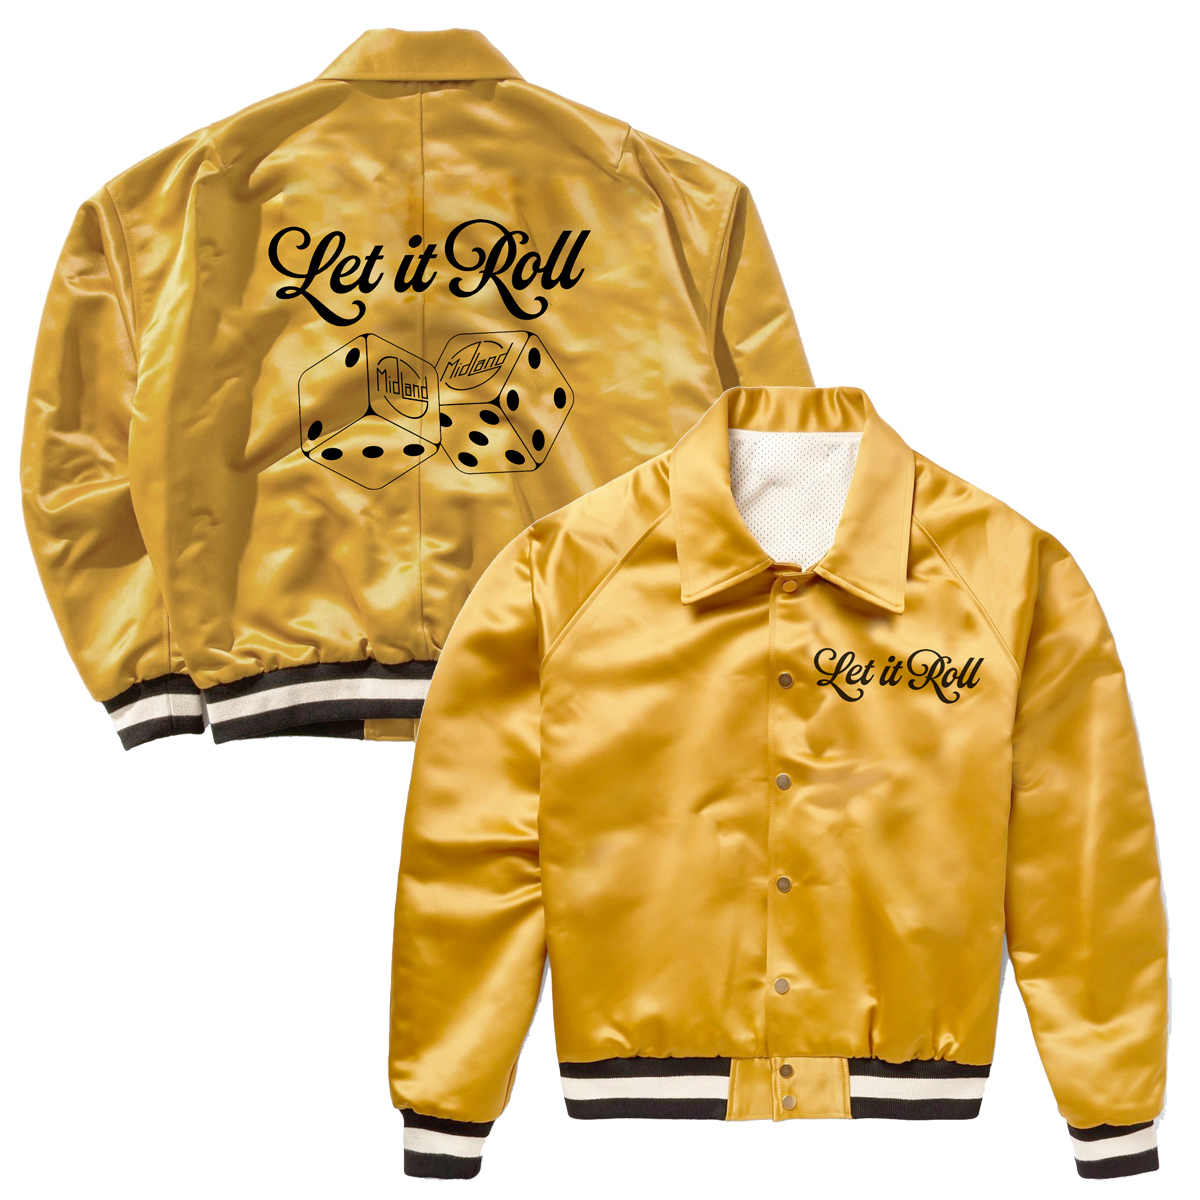 2019 Let It Roll Gold Bomber Jacket